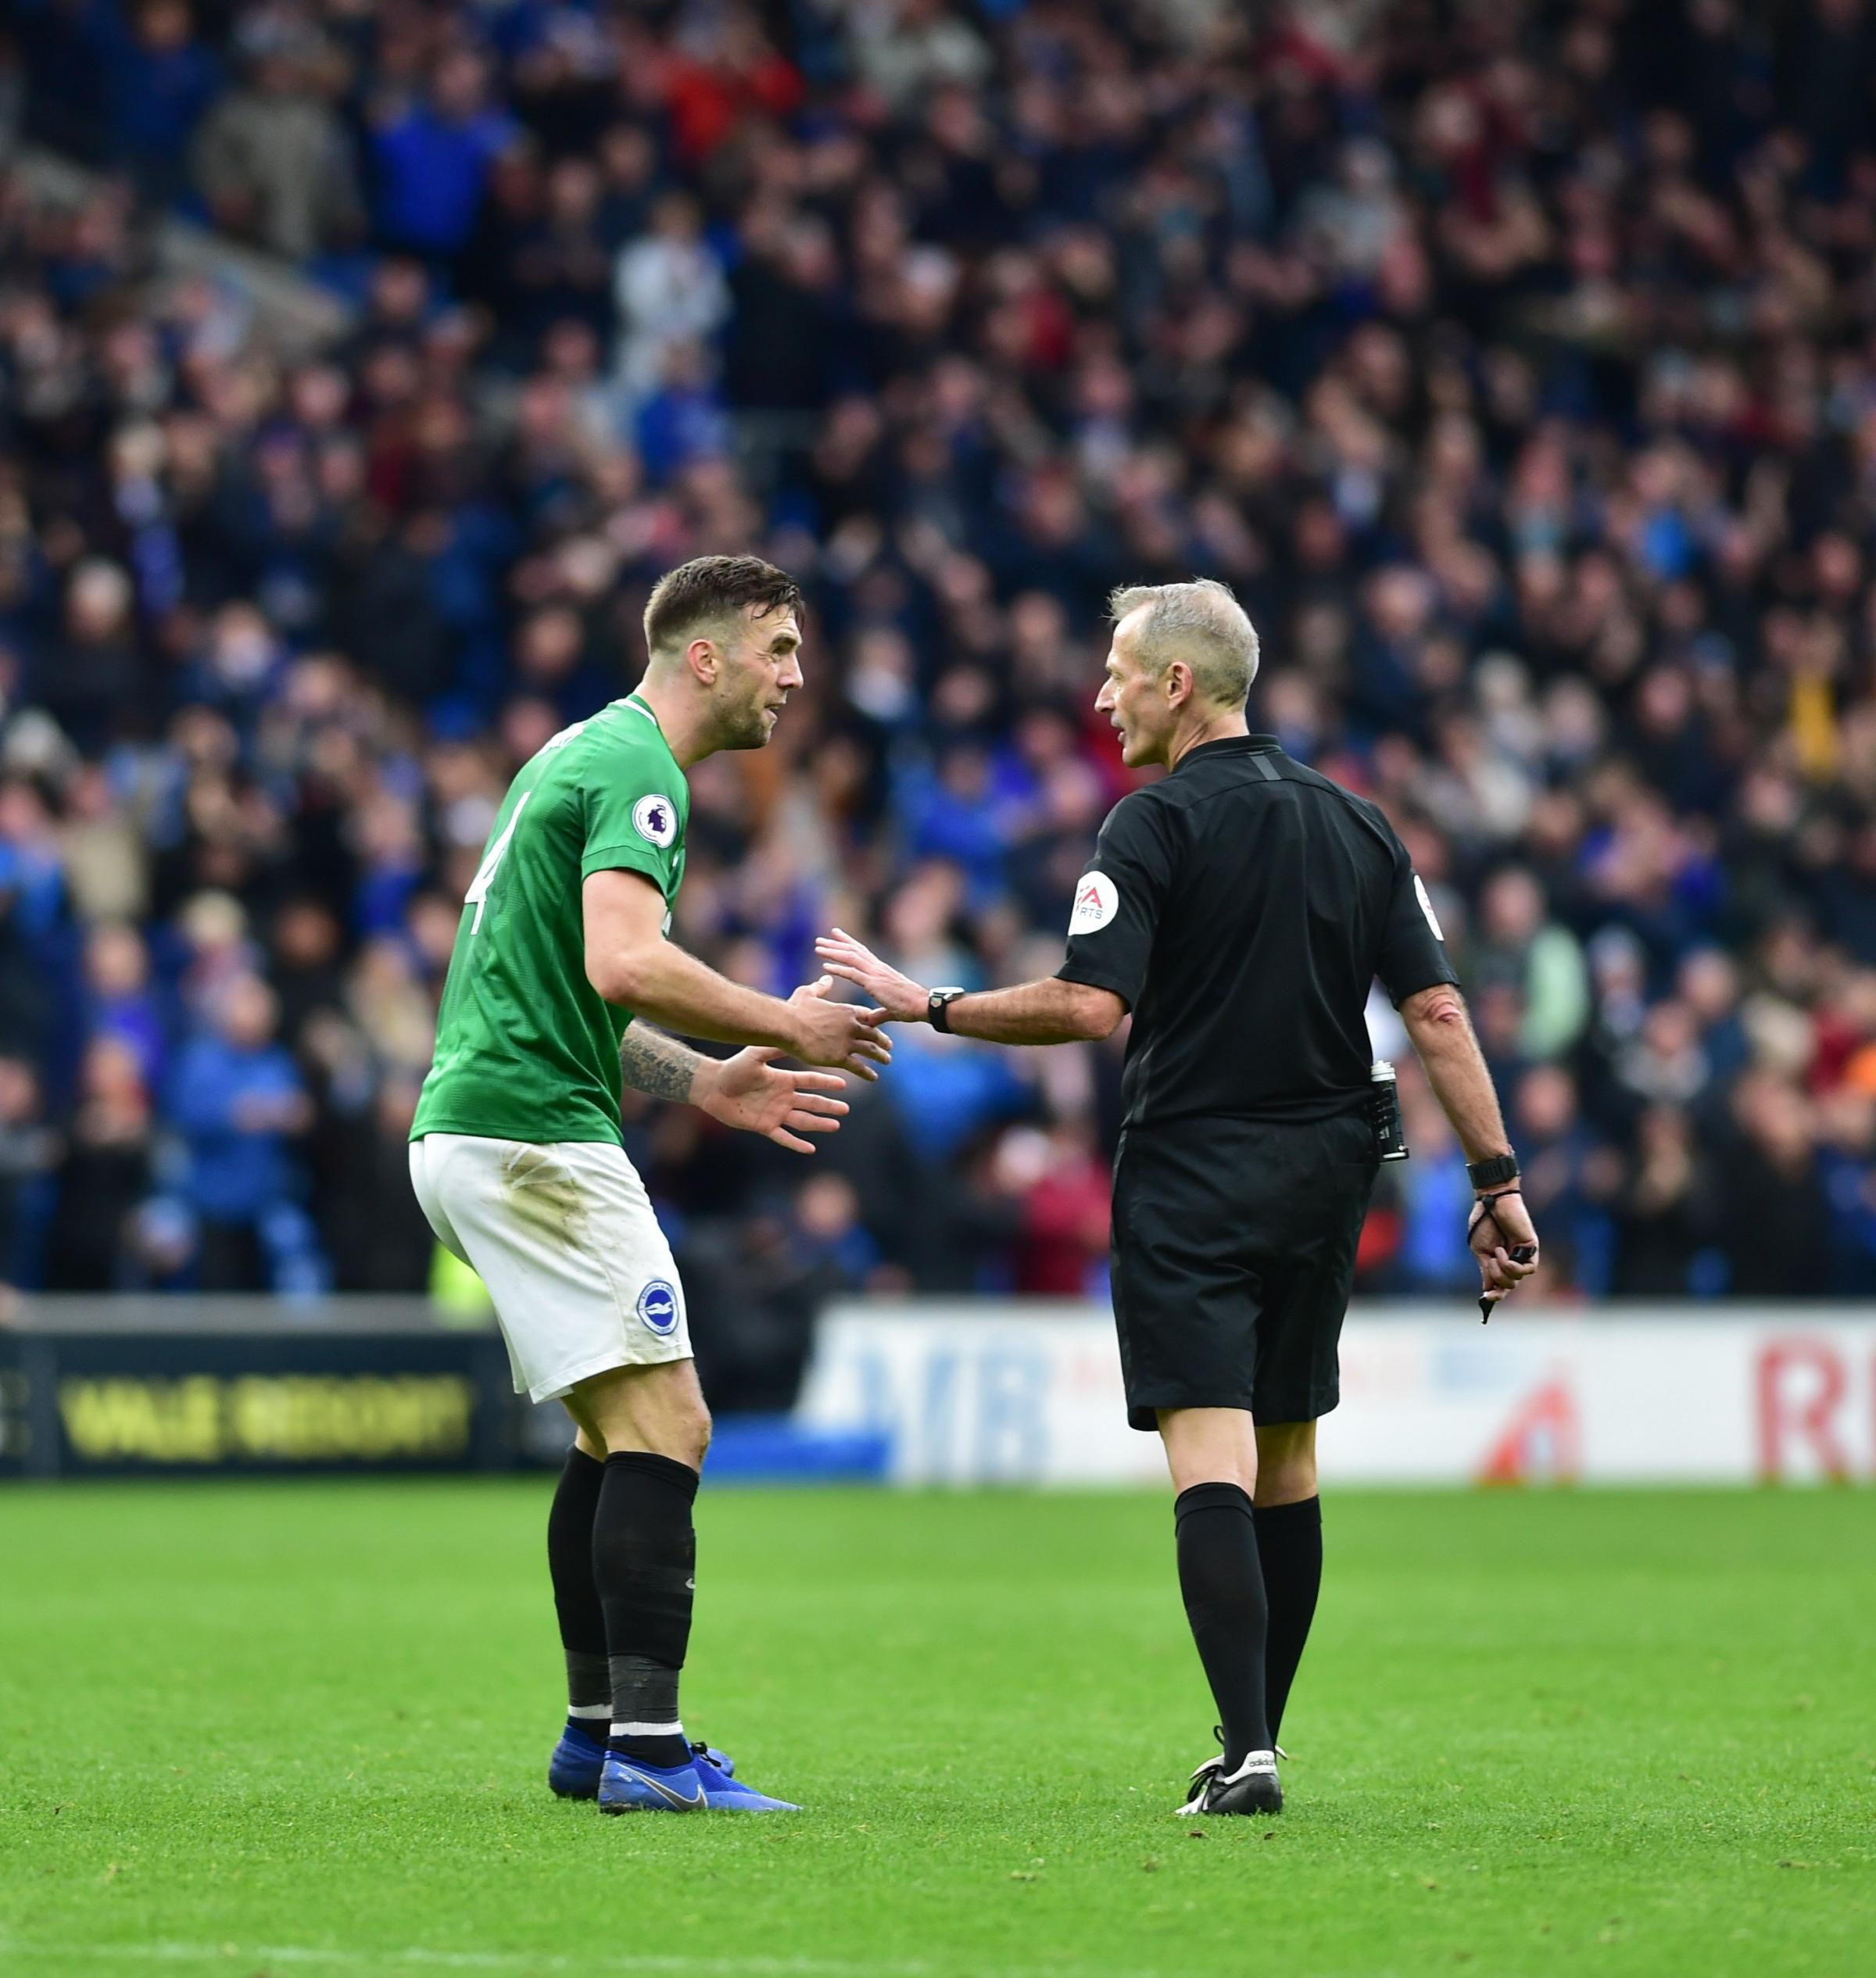 Duffy: Fans' ovation at Cardiff meant a lot